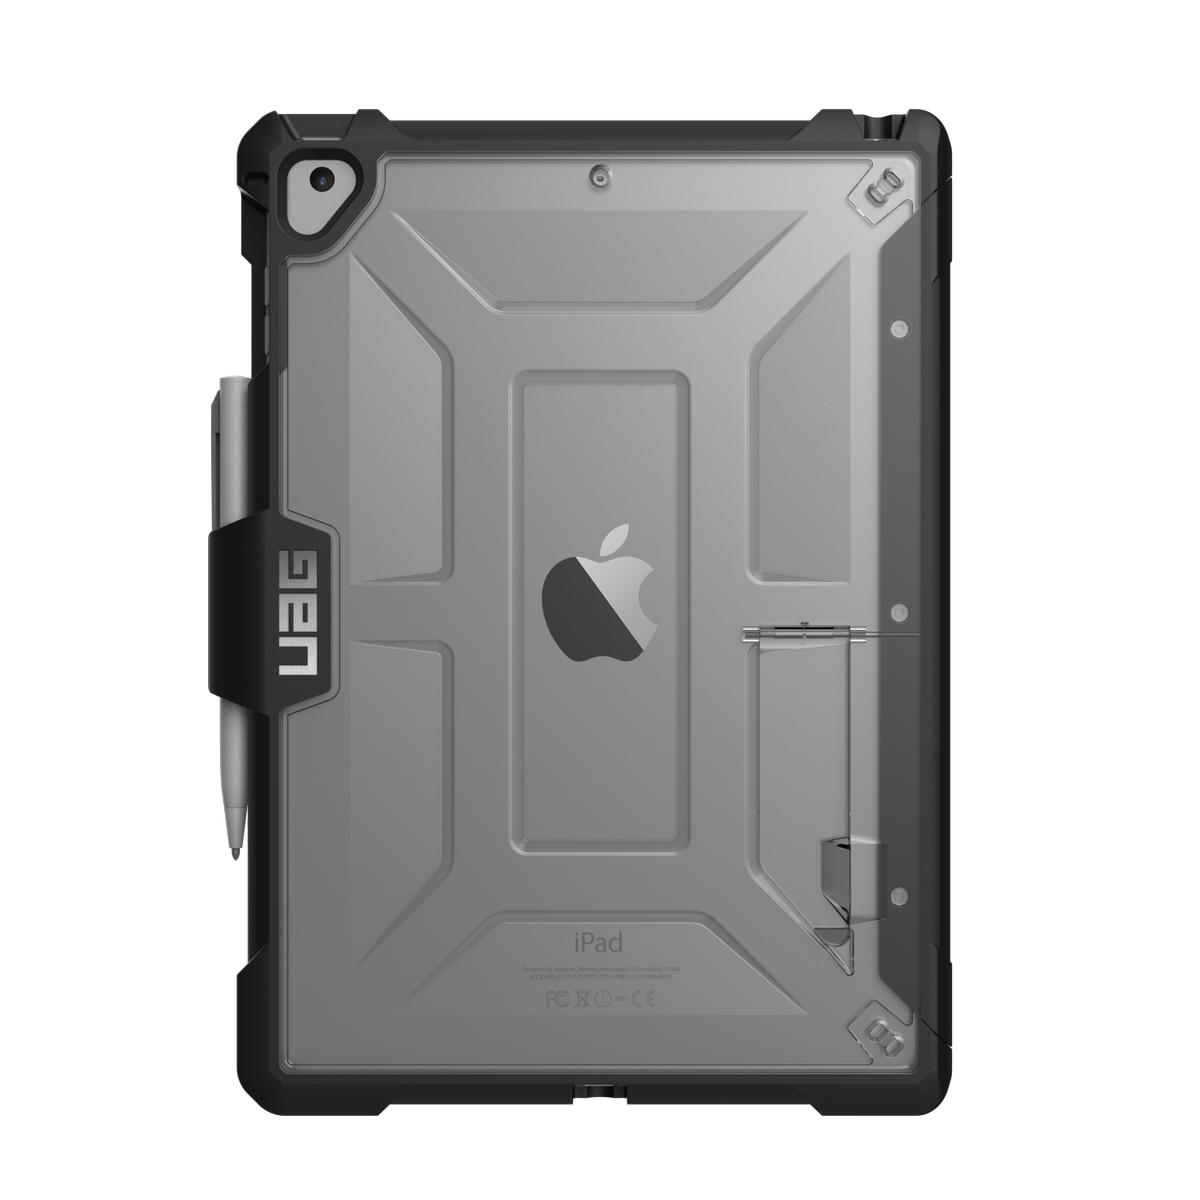 Uag Plasma Ipad 5Th 6Th Gen Case Compatible With The Following Ipad 2018 9 7 Inch 6Th Gen Model Numbers A1893 A1954 Ipad 2017 9 7 Inch 5Th Gen Model Numbers A1822 A1823 Ipad Air Model Number A1474 A1475 Ipad Pro 9 7 Inch Model Compare Prices